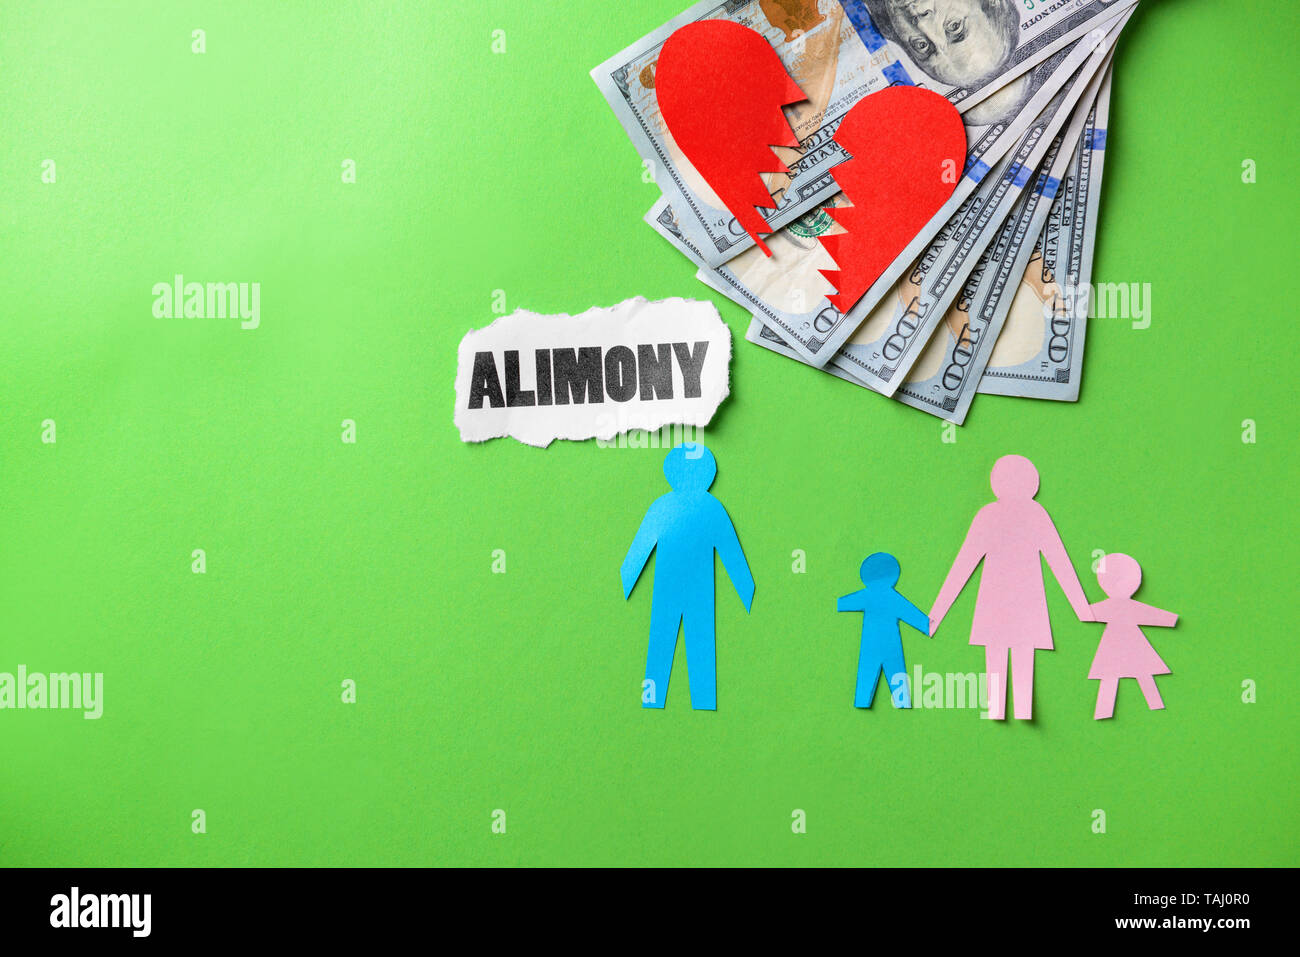 Word ALIMONY with paper figures of family, broken heart and